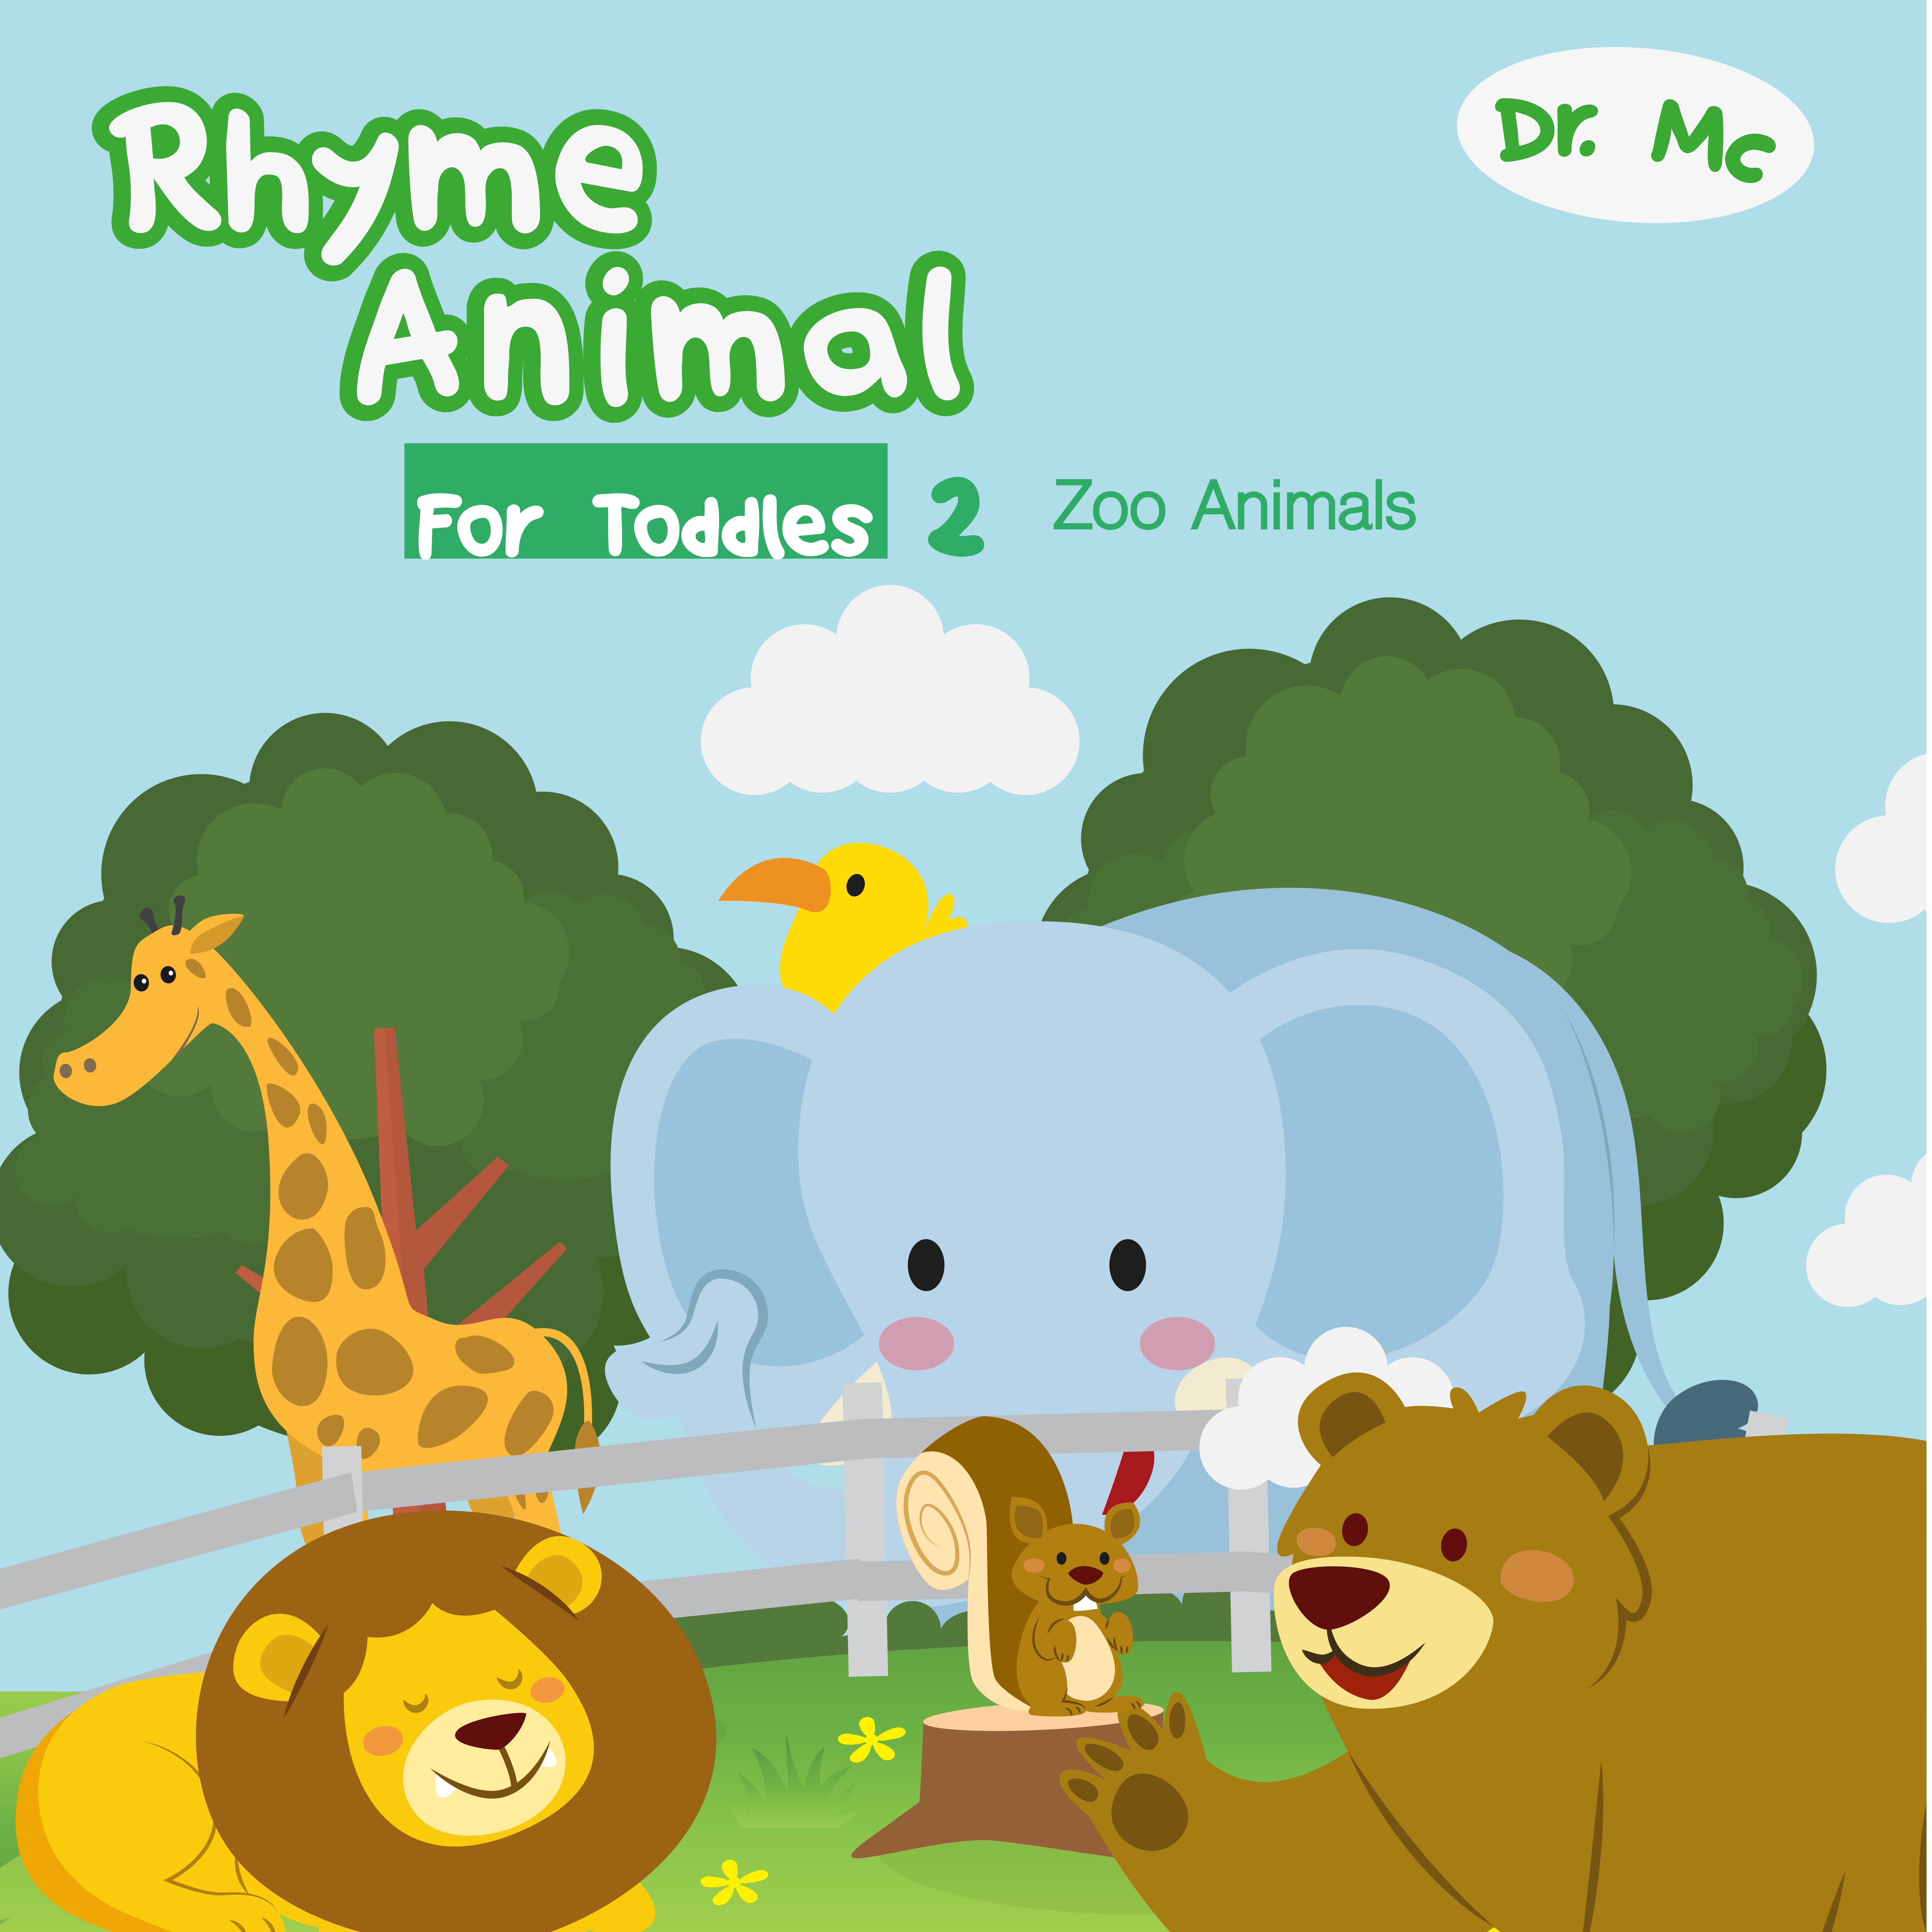 Smashwords Rhyme Animal For Toddles 2 Zoo Animals Animal Books For Kids The Ryhme Animal Children S Book 2 A Book By Dr Mc